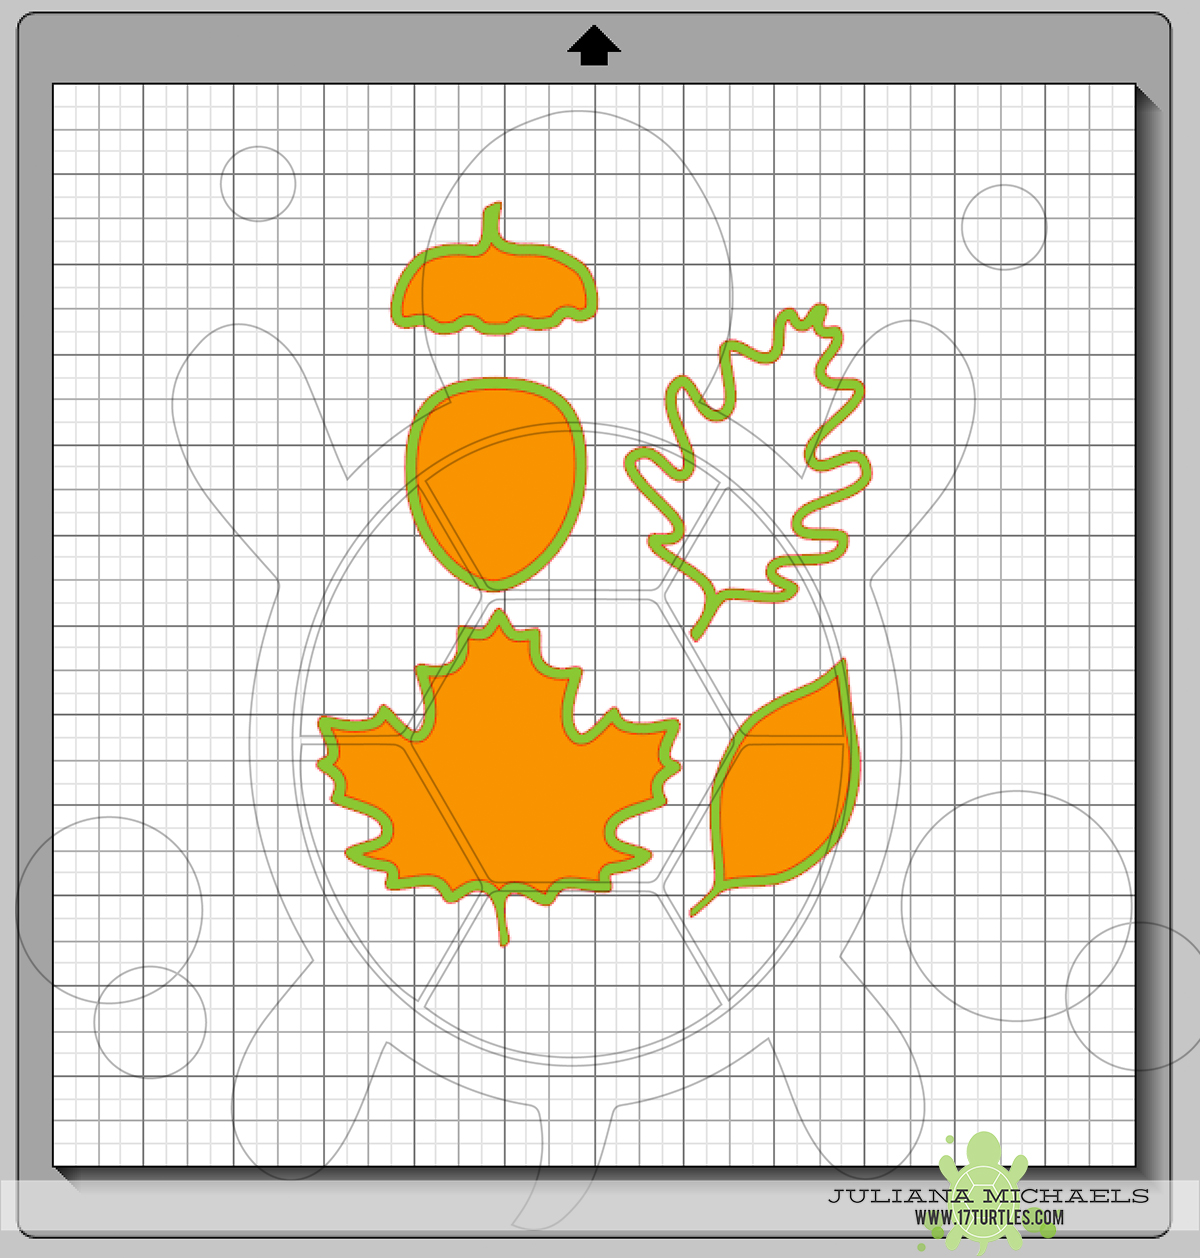 Compound Paths with the layers of a Digital Cut File Leaves & Acorn by Juliana Michaels 17turtles